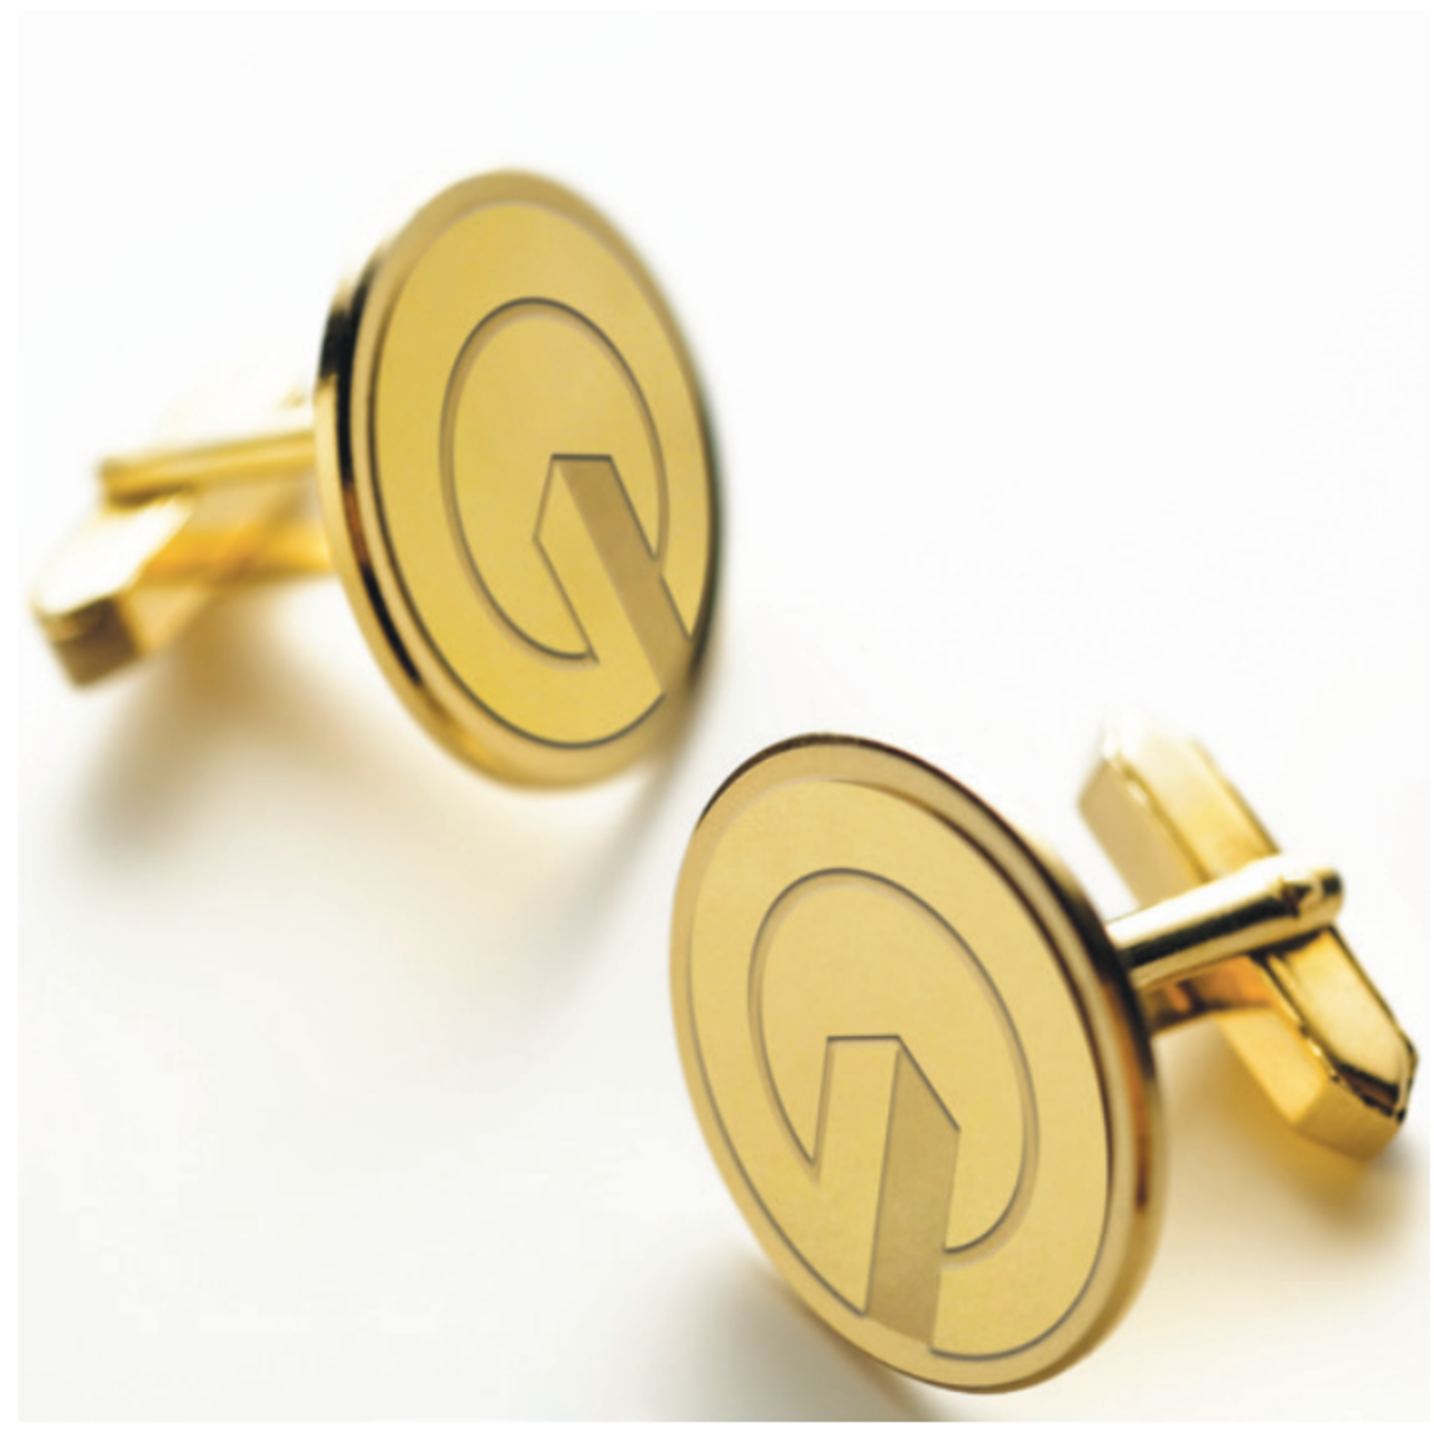 Grace Construction Chattanooga, TN Gold Cufflinks